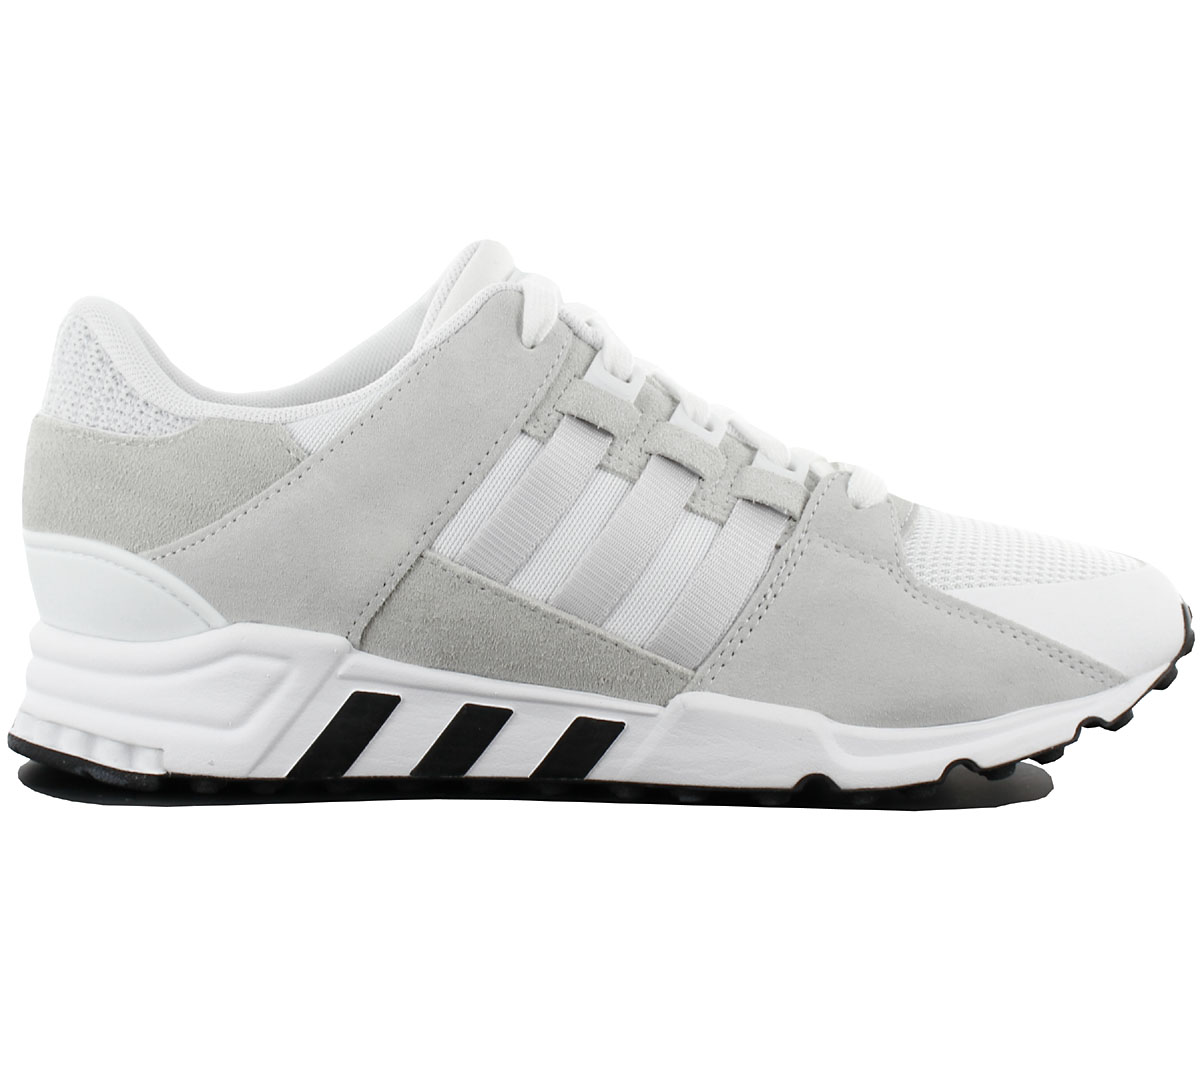 Details about Adidas Originals Eqt Equipment Support RF Shoes Trainers BY9625 New